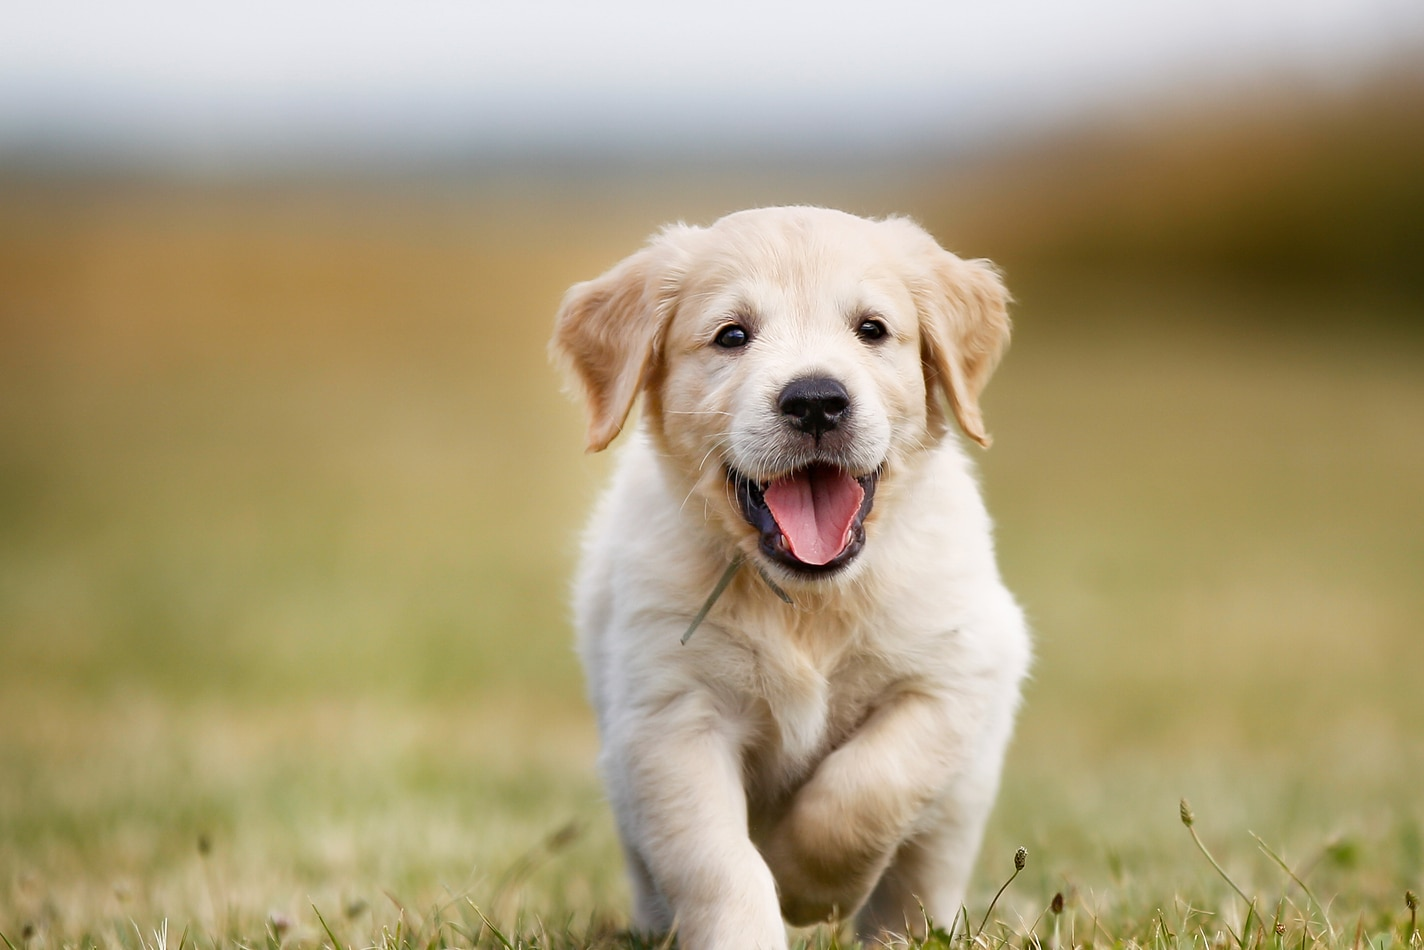 Golden retriever puppy with smile on face runs outside.